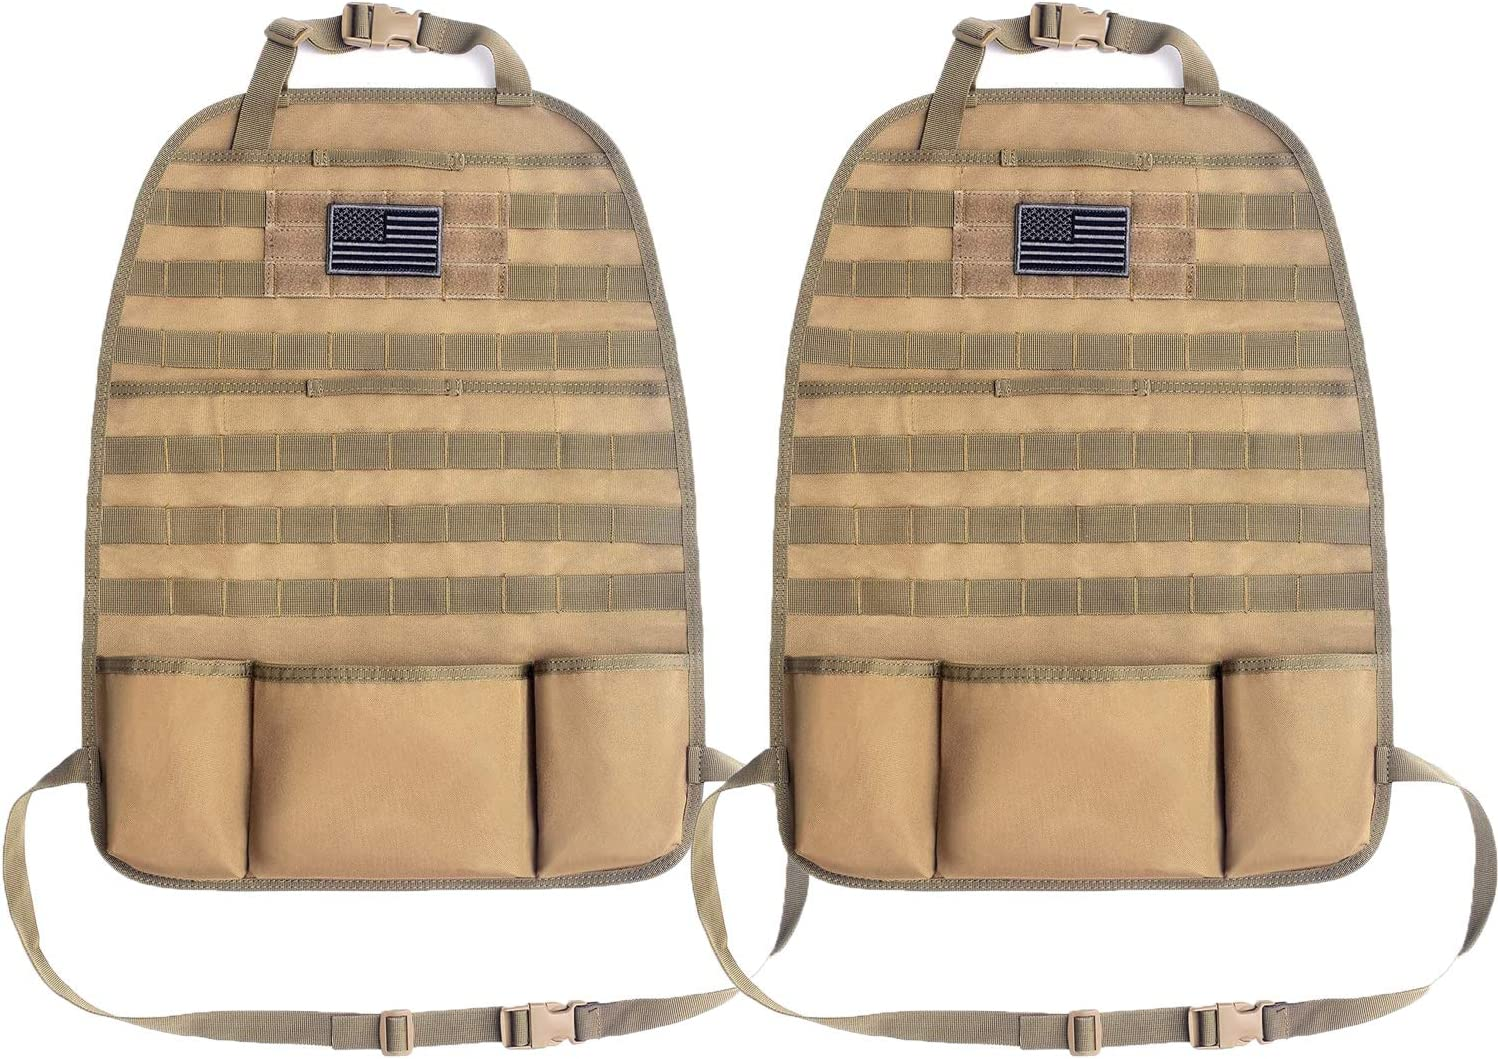 Tacticool Car Seat Back Organizer Tactical Special price - Molle Vehi Upgraded Sale SALE% OFF